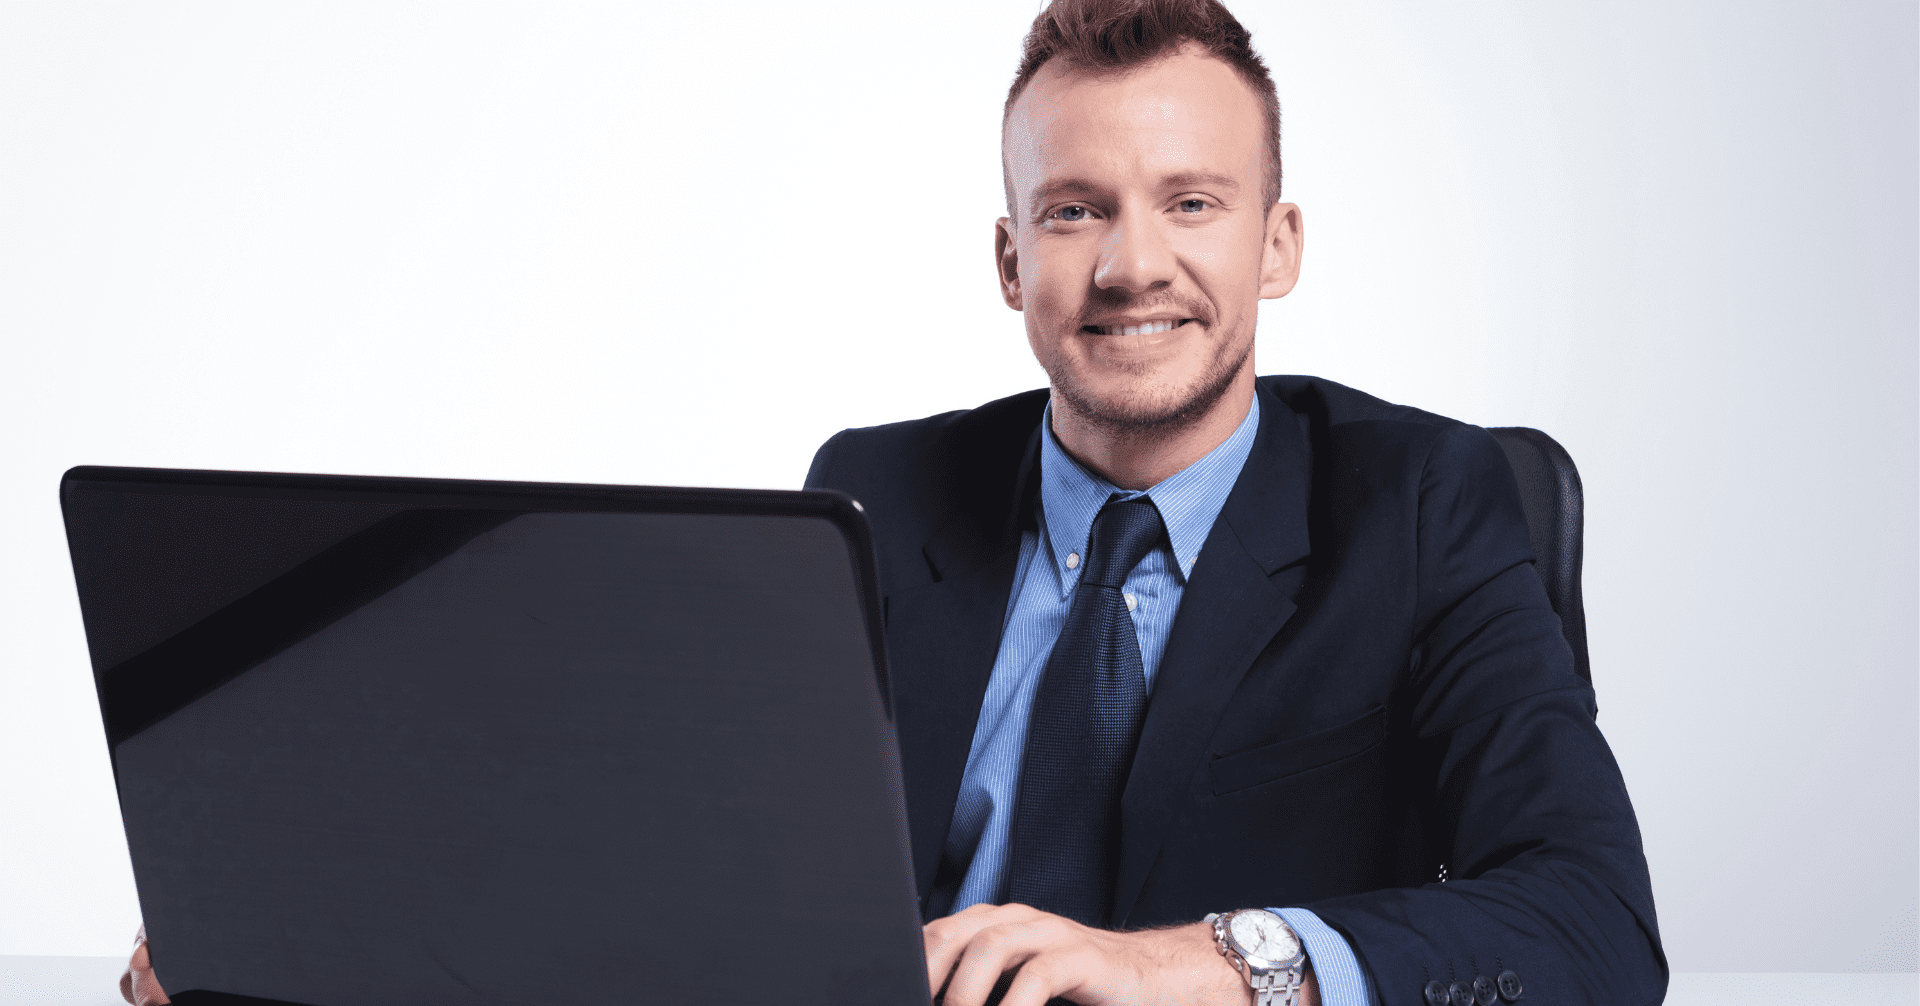 Businessman at laptop wanting a more professional online presence